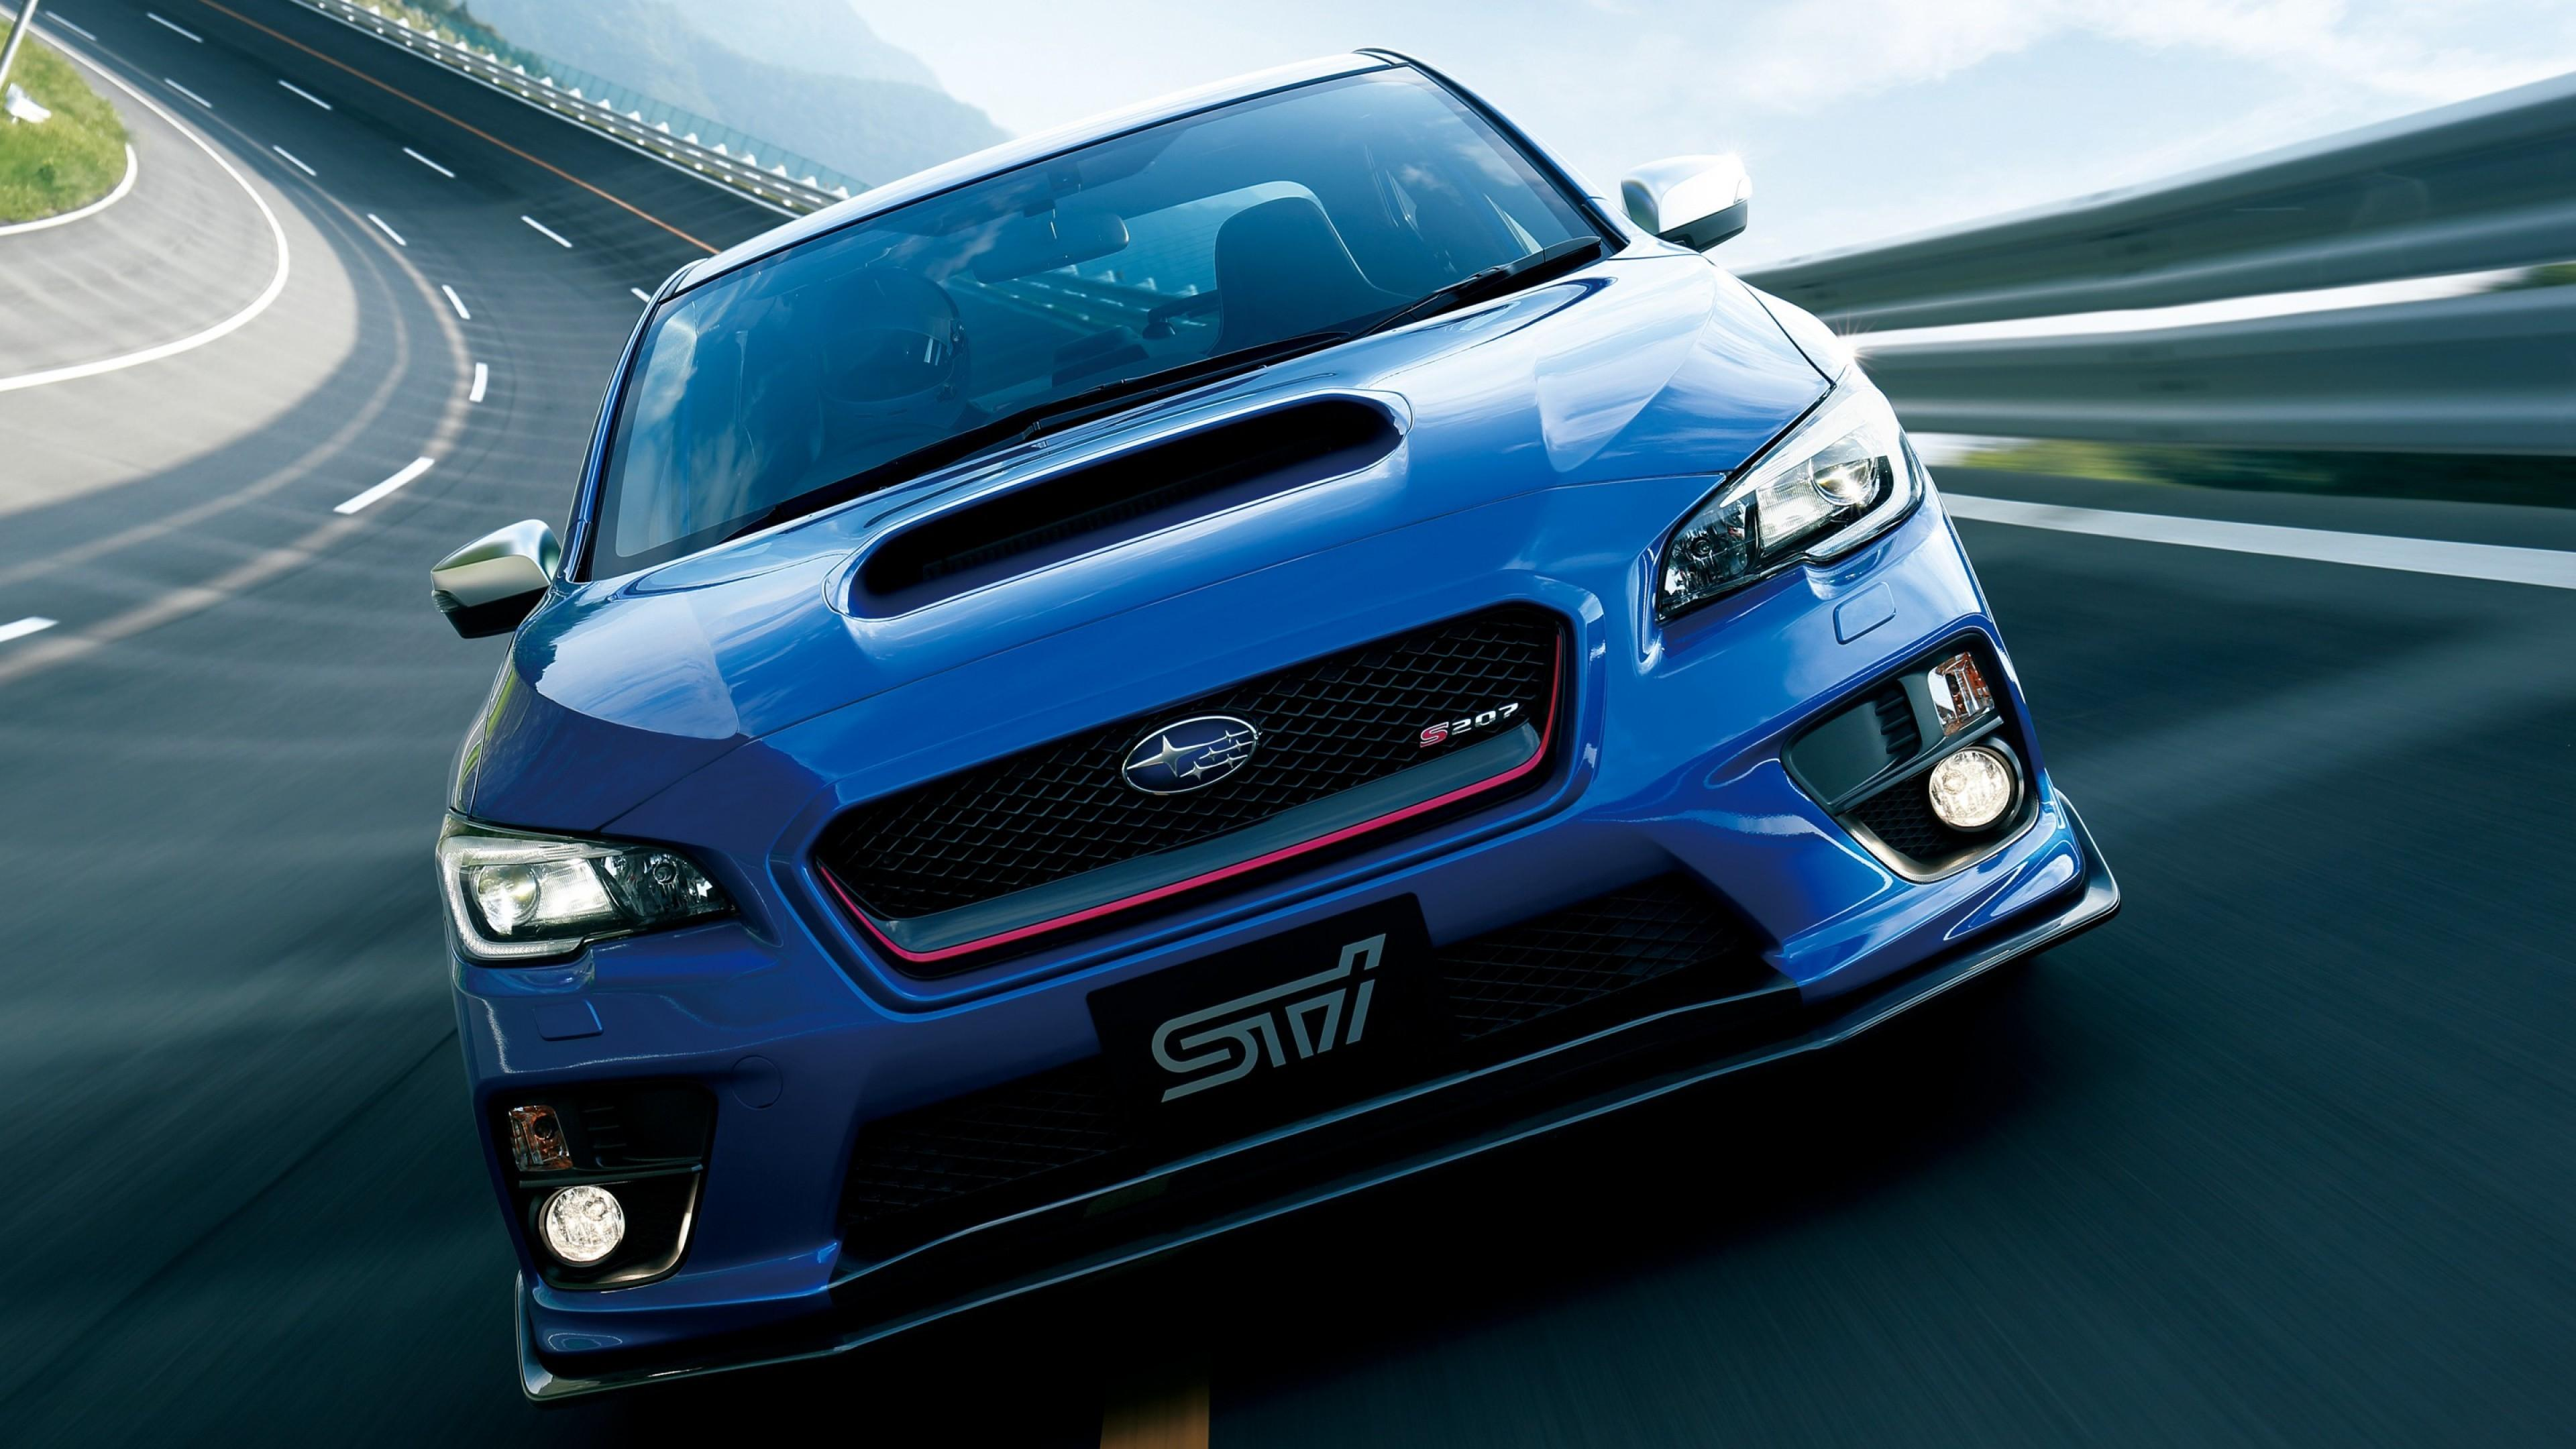 Subaru WRX STI Free Wallpaper 4K Desktop Mobiles - Wallpaper ...